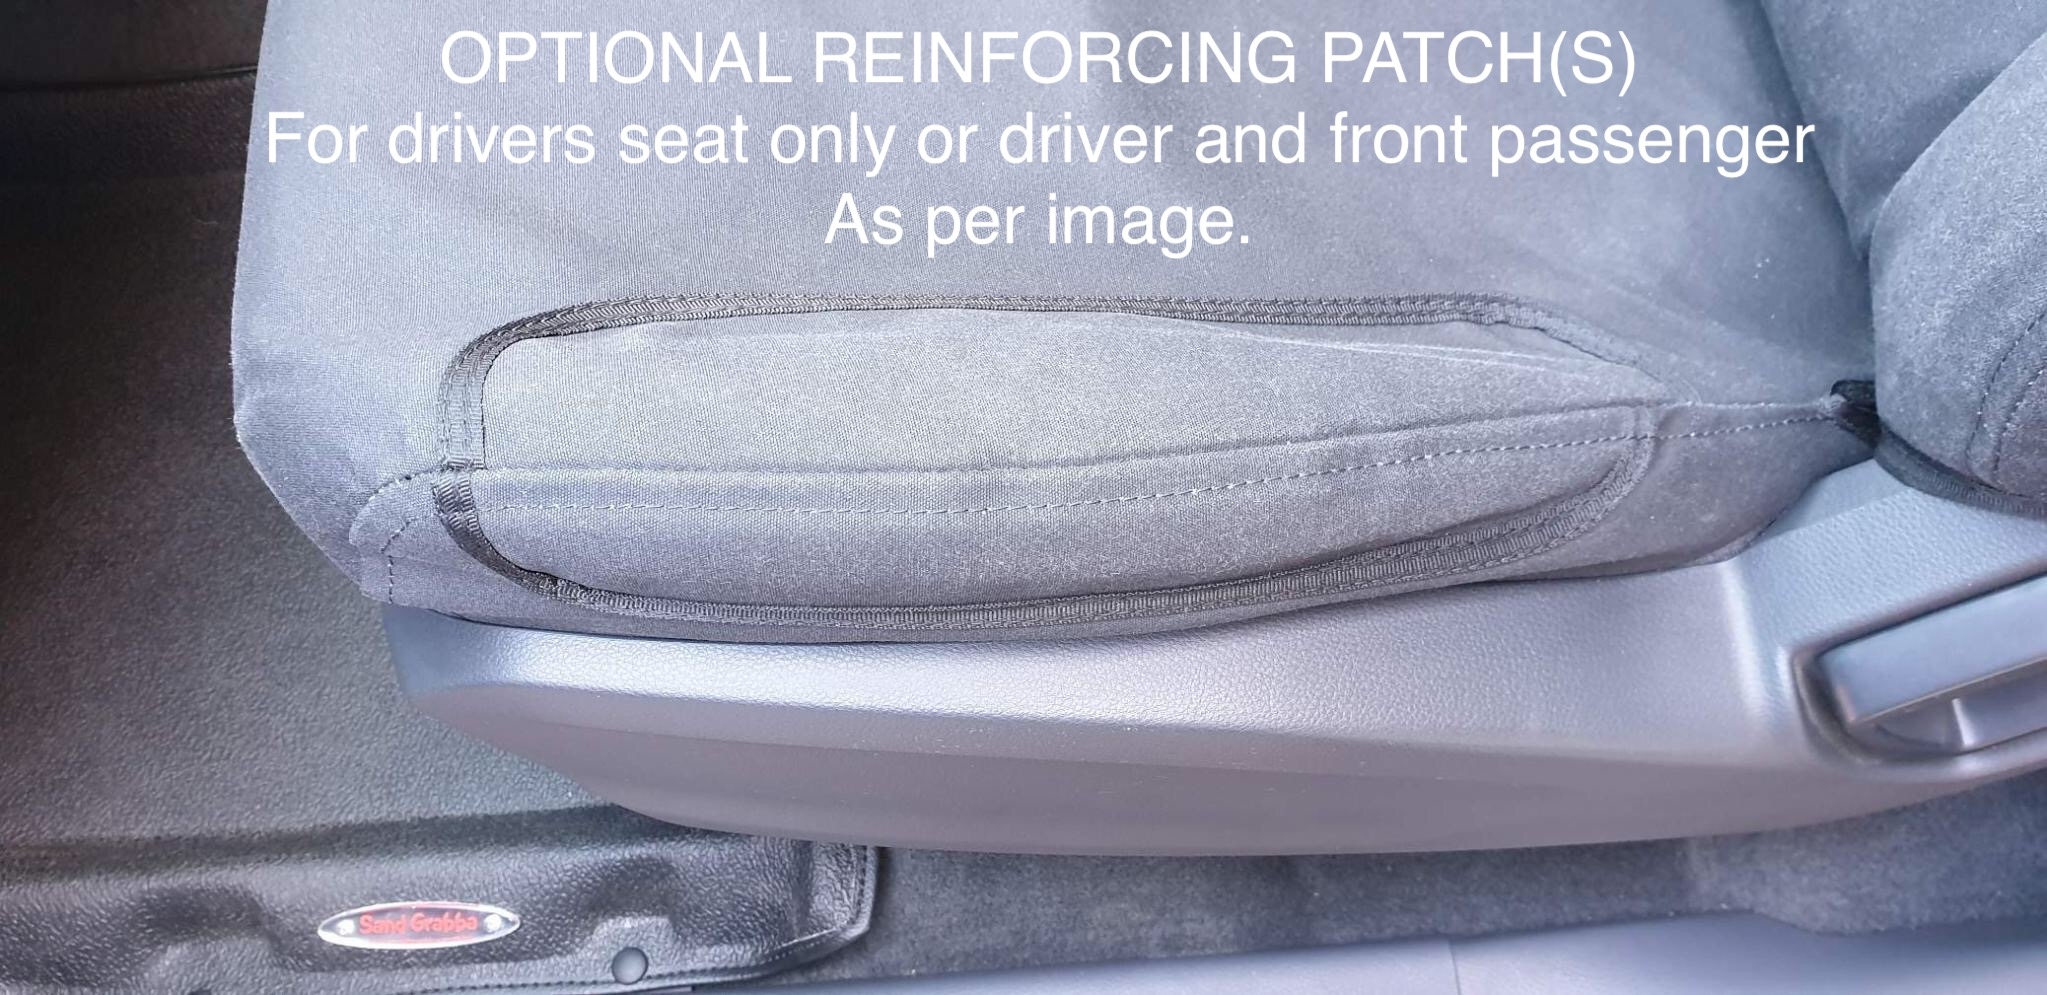 Image of Reinforcing patch sewn onto a passenger seat.